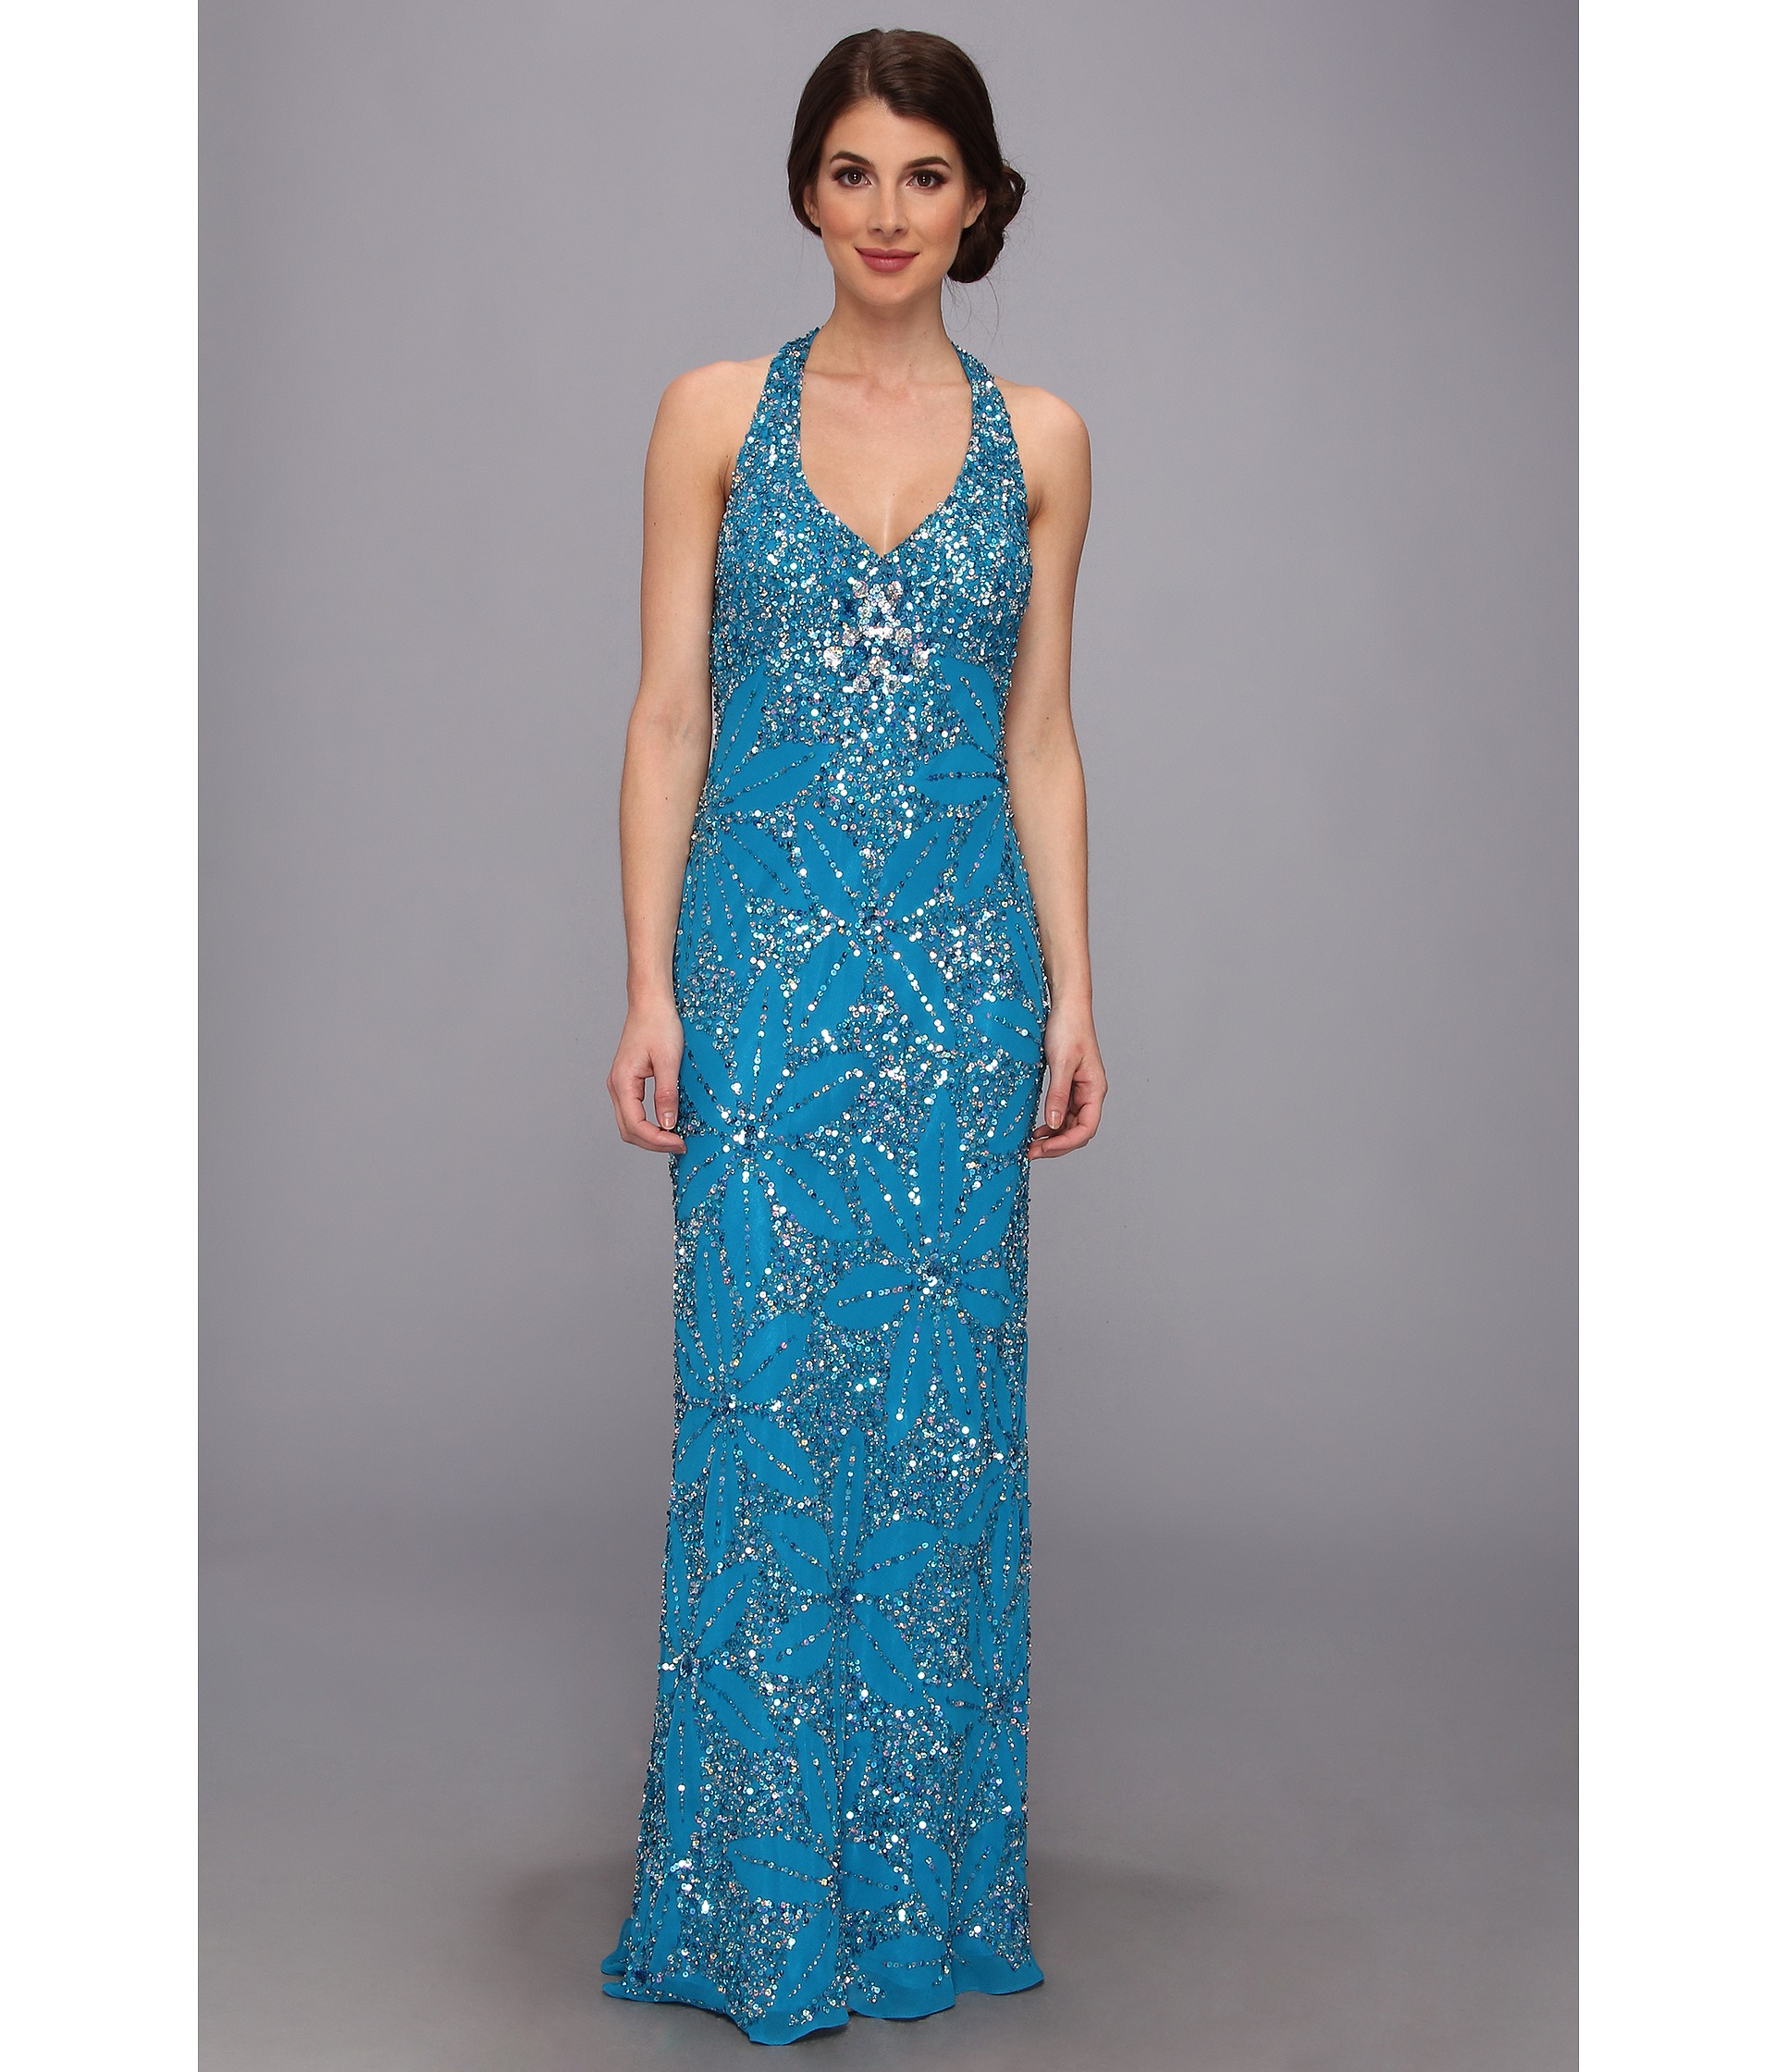 Adrianna Papell Dream Girls Bead Prom Gown Deep Periwinkle  Zapposcom Free Shipping BOTH Ways